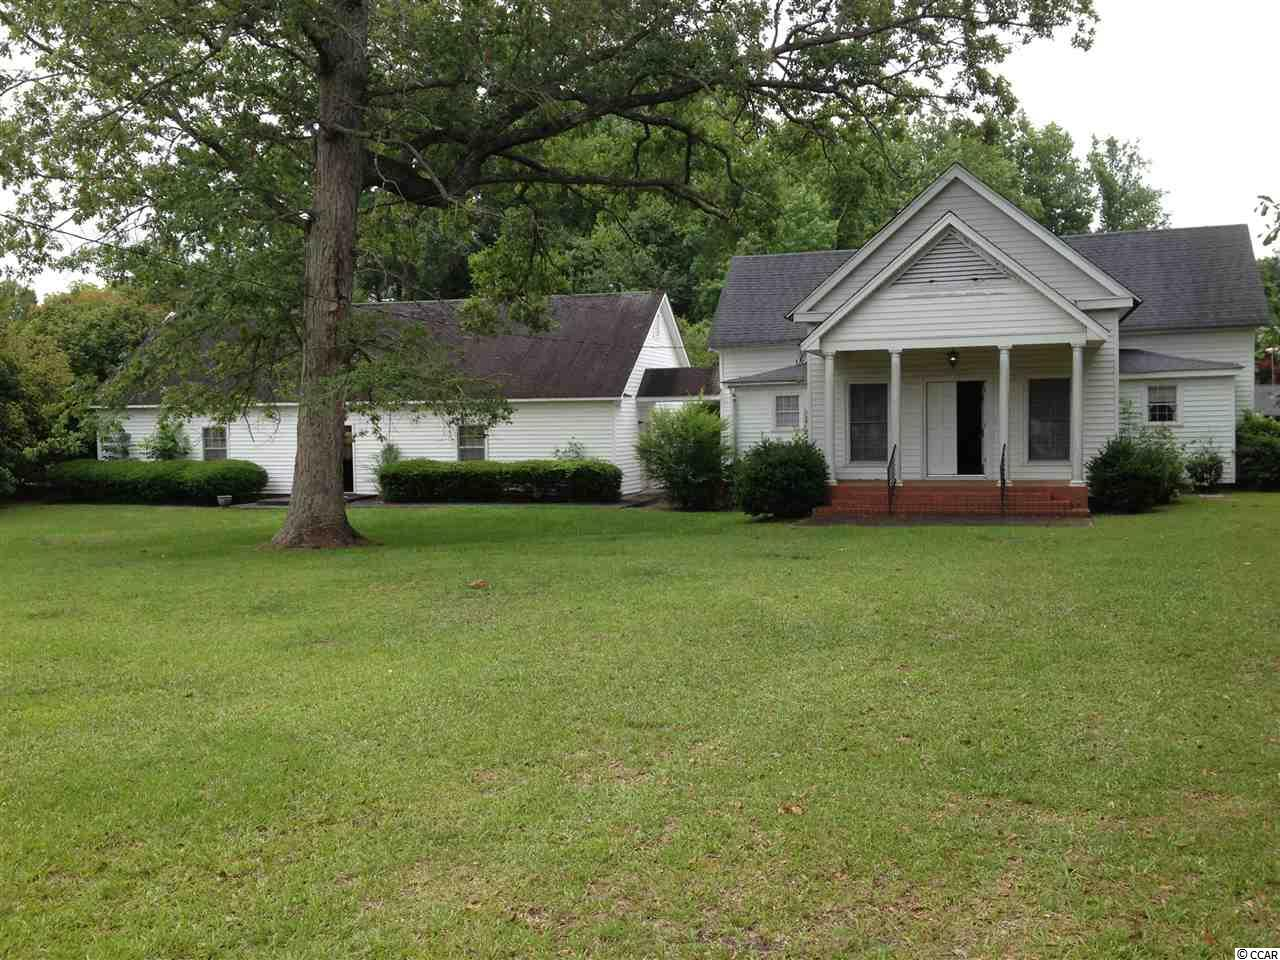 700 E 5th Street, Tabor City, NC 28463